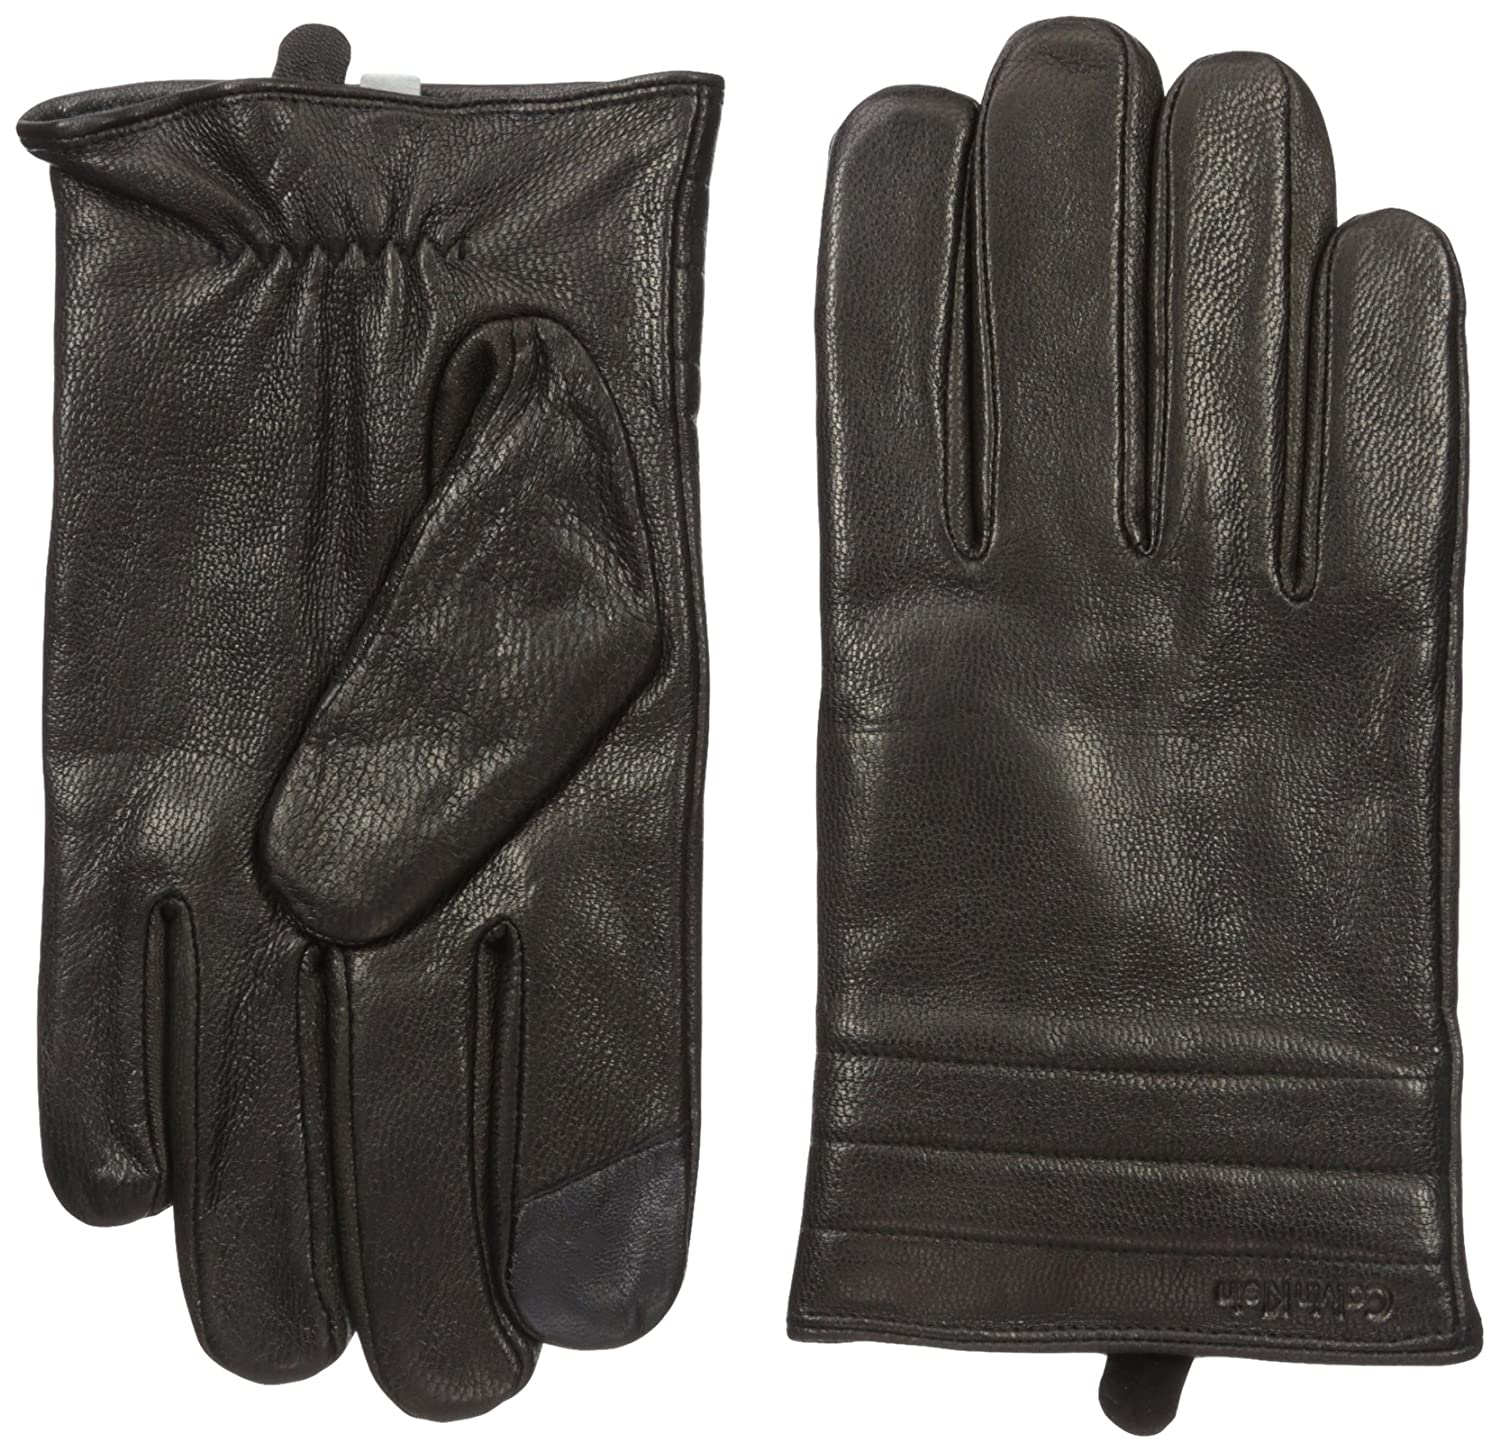 Calvin Klein mens Basic Quilted Cuff Leather Glove With Touchscreen Technology Calvin Klein Neckties HKL63210